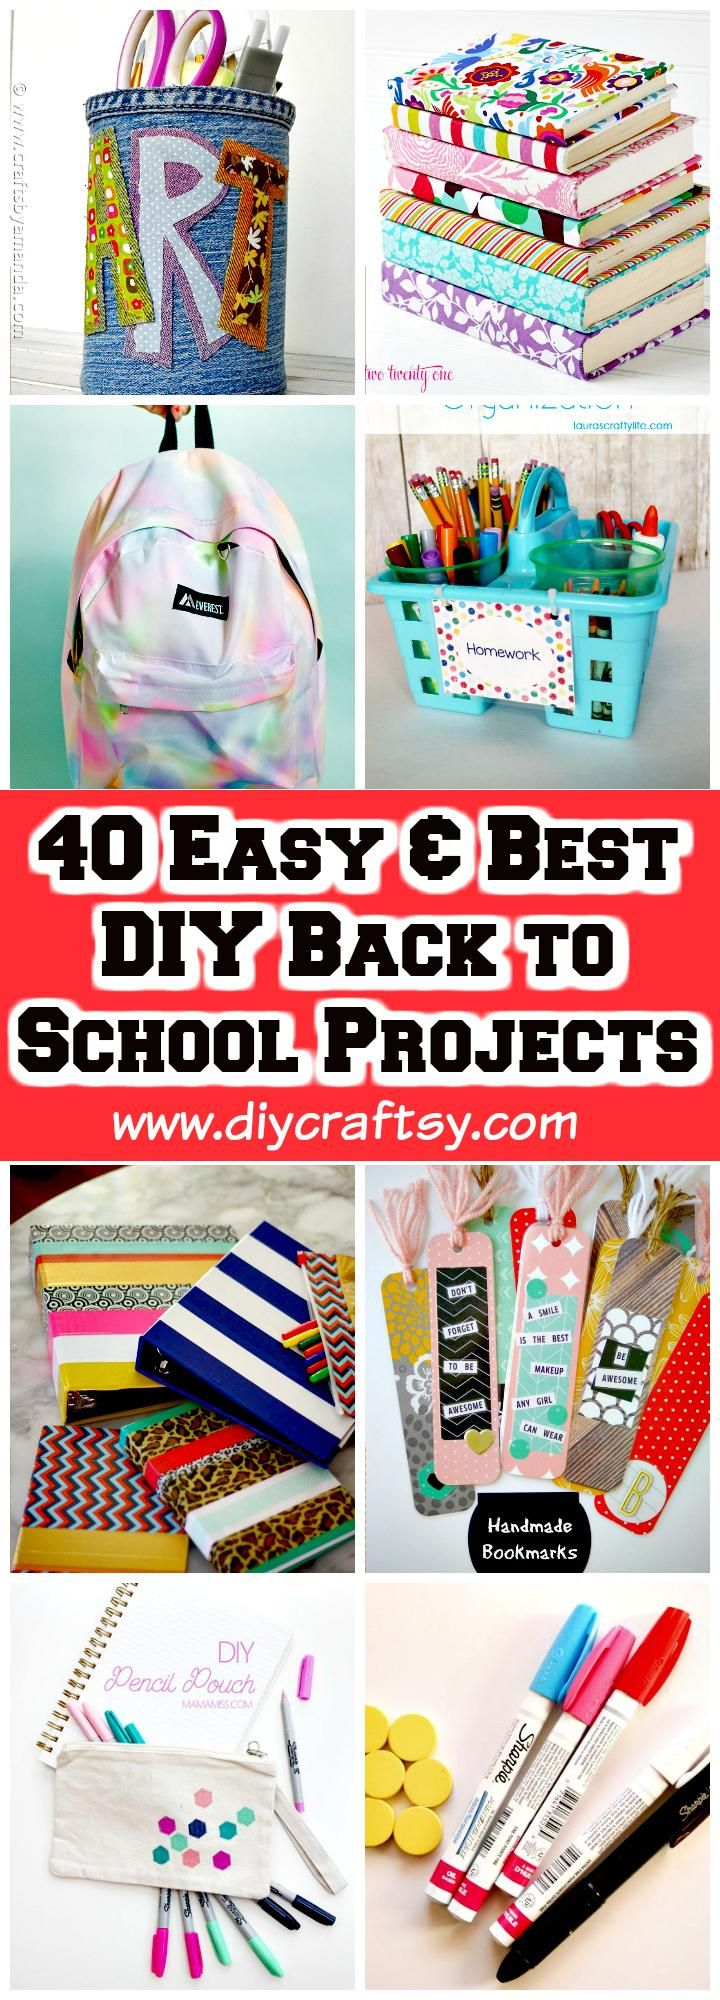 40 Easy & Best DIY Back to School Projects - DIY & Crafts